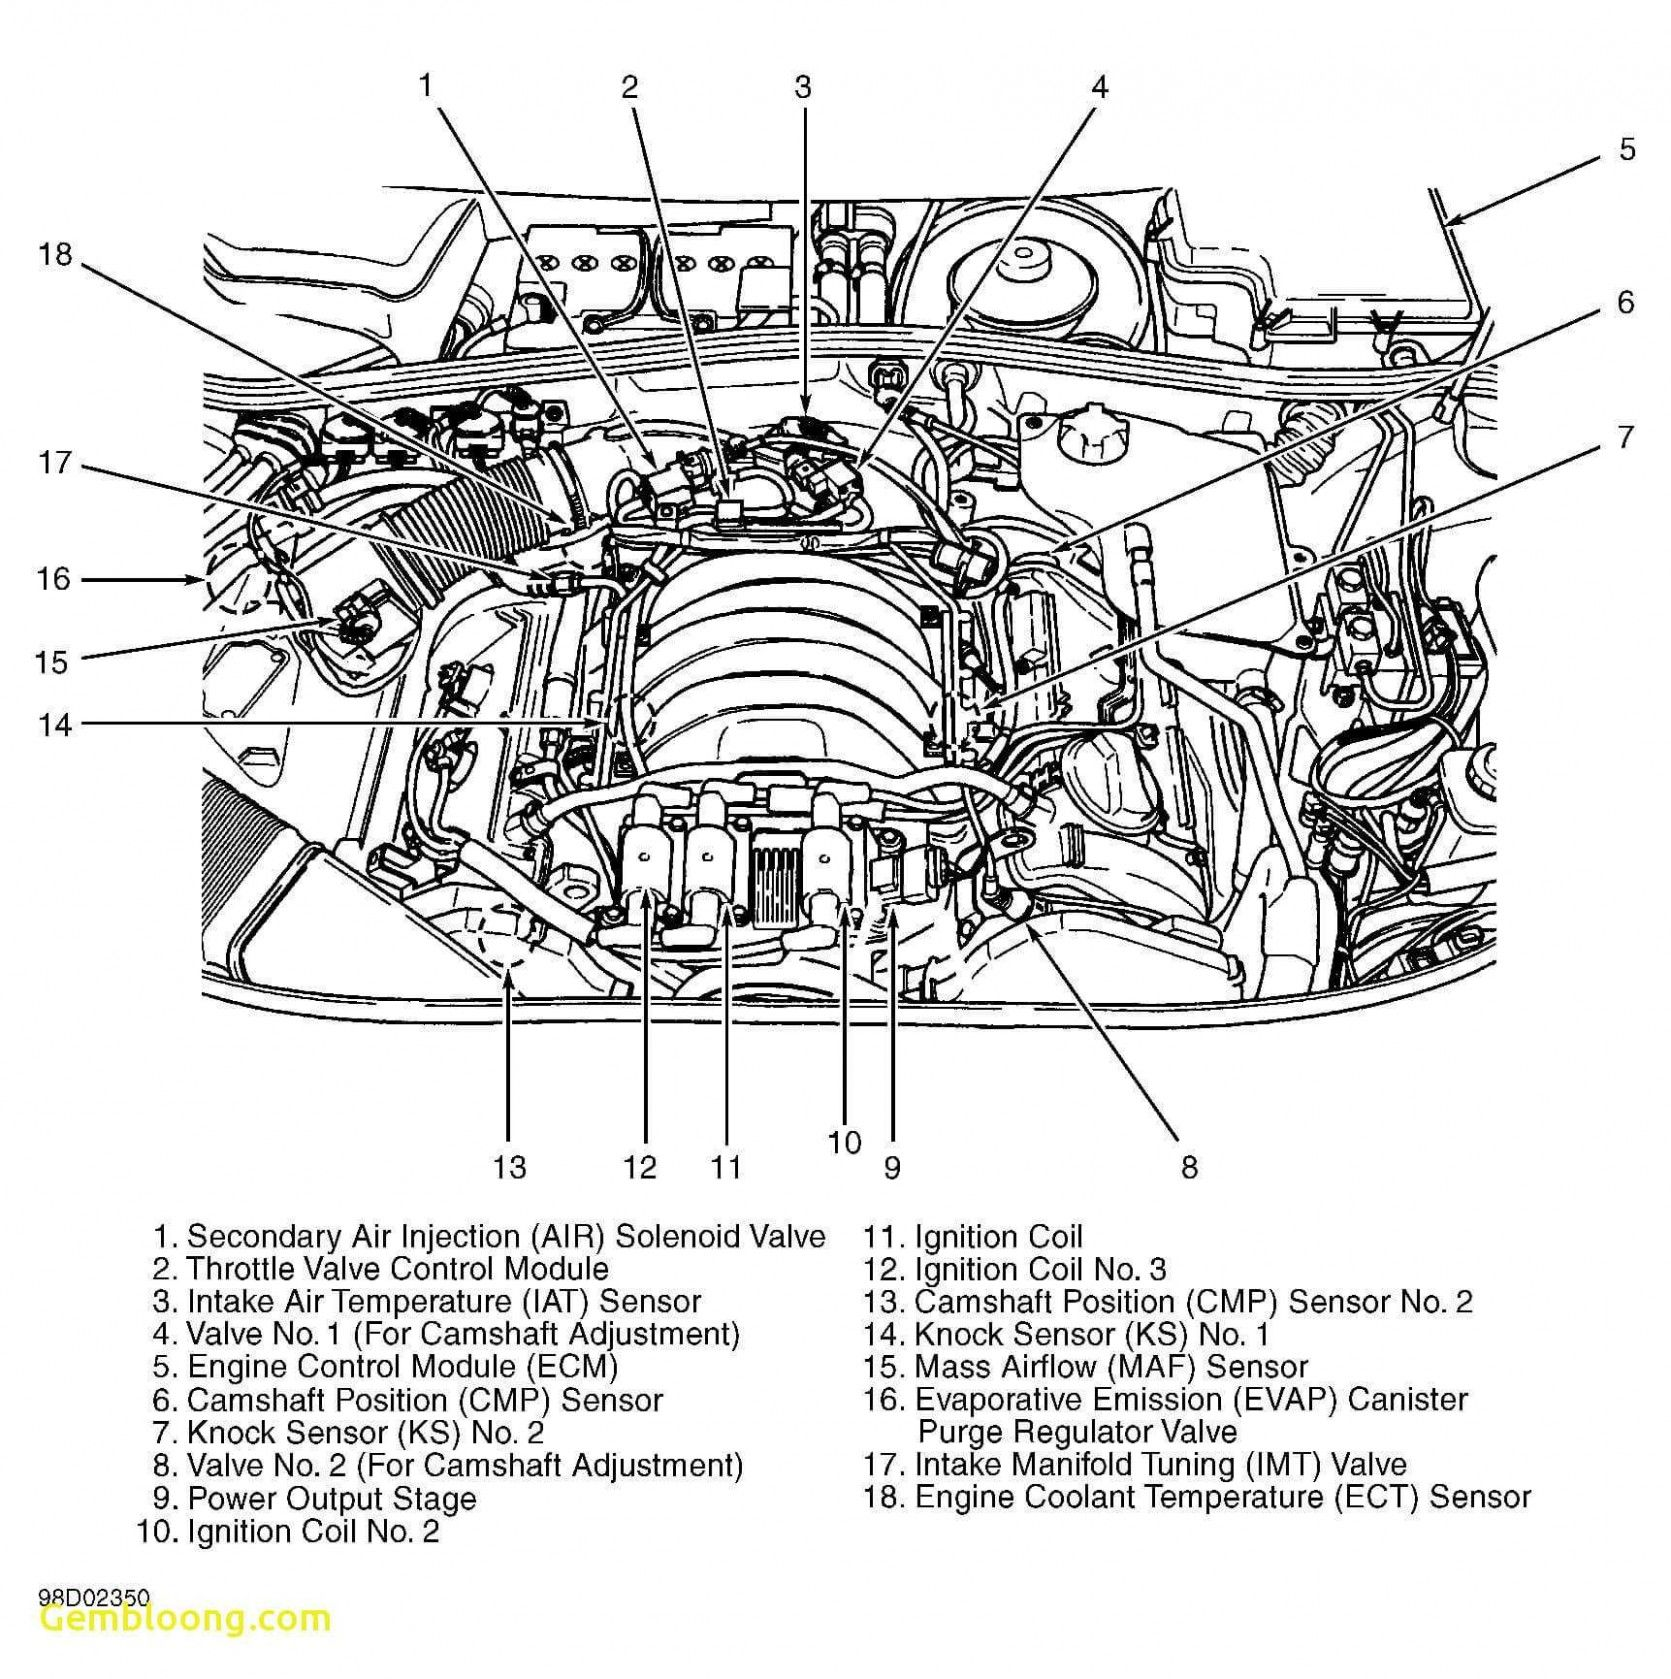 Parts Of An Engine Diagram Di